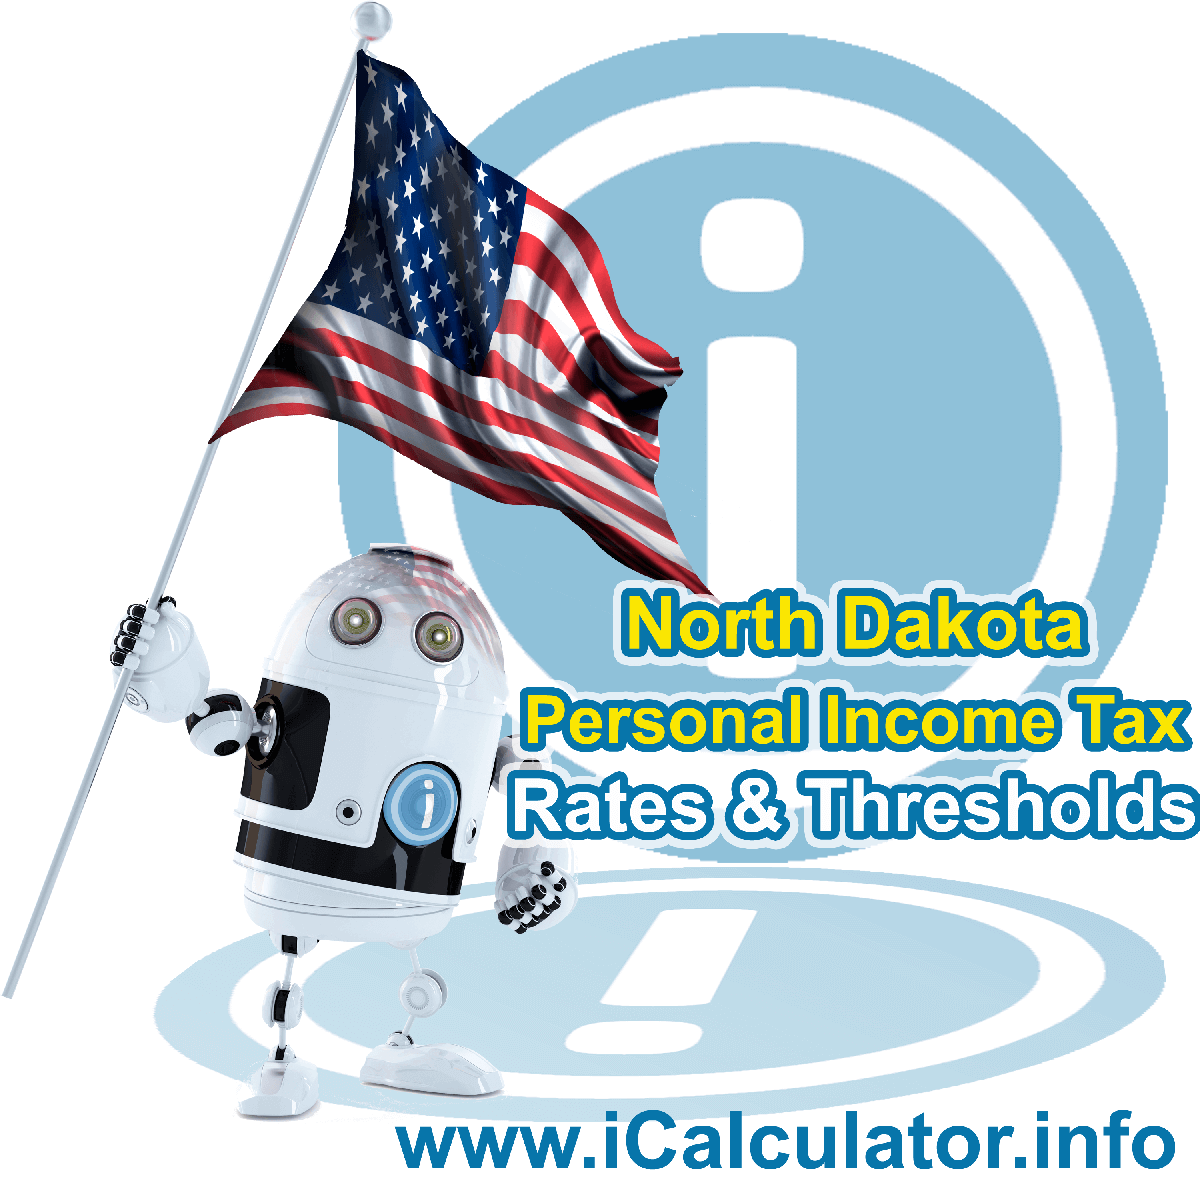 North Dakota State Tax Tables 2021. This image displays details of the North Dakota State Tax Tables for the 2021 tax return year which is provided in support of the 2021 US Tax Calculator